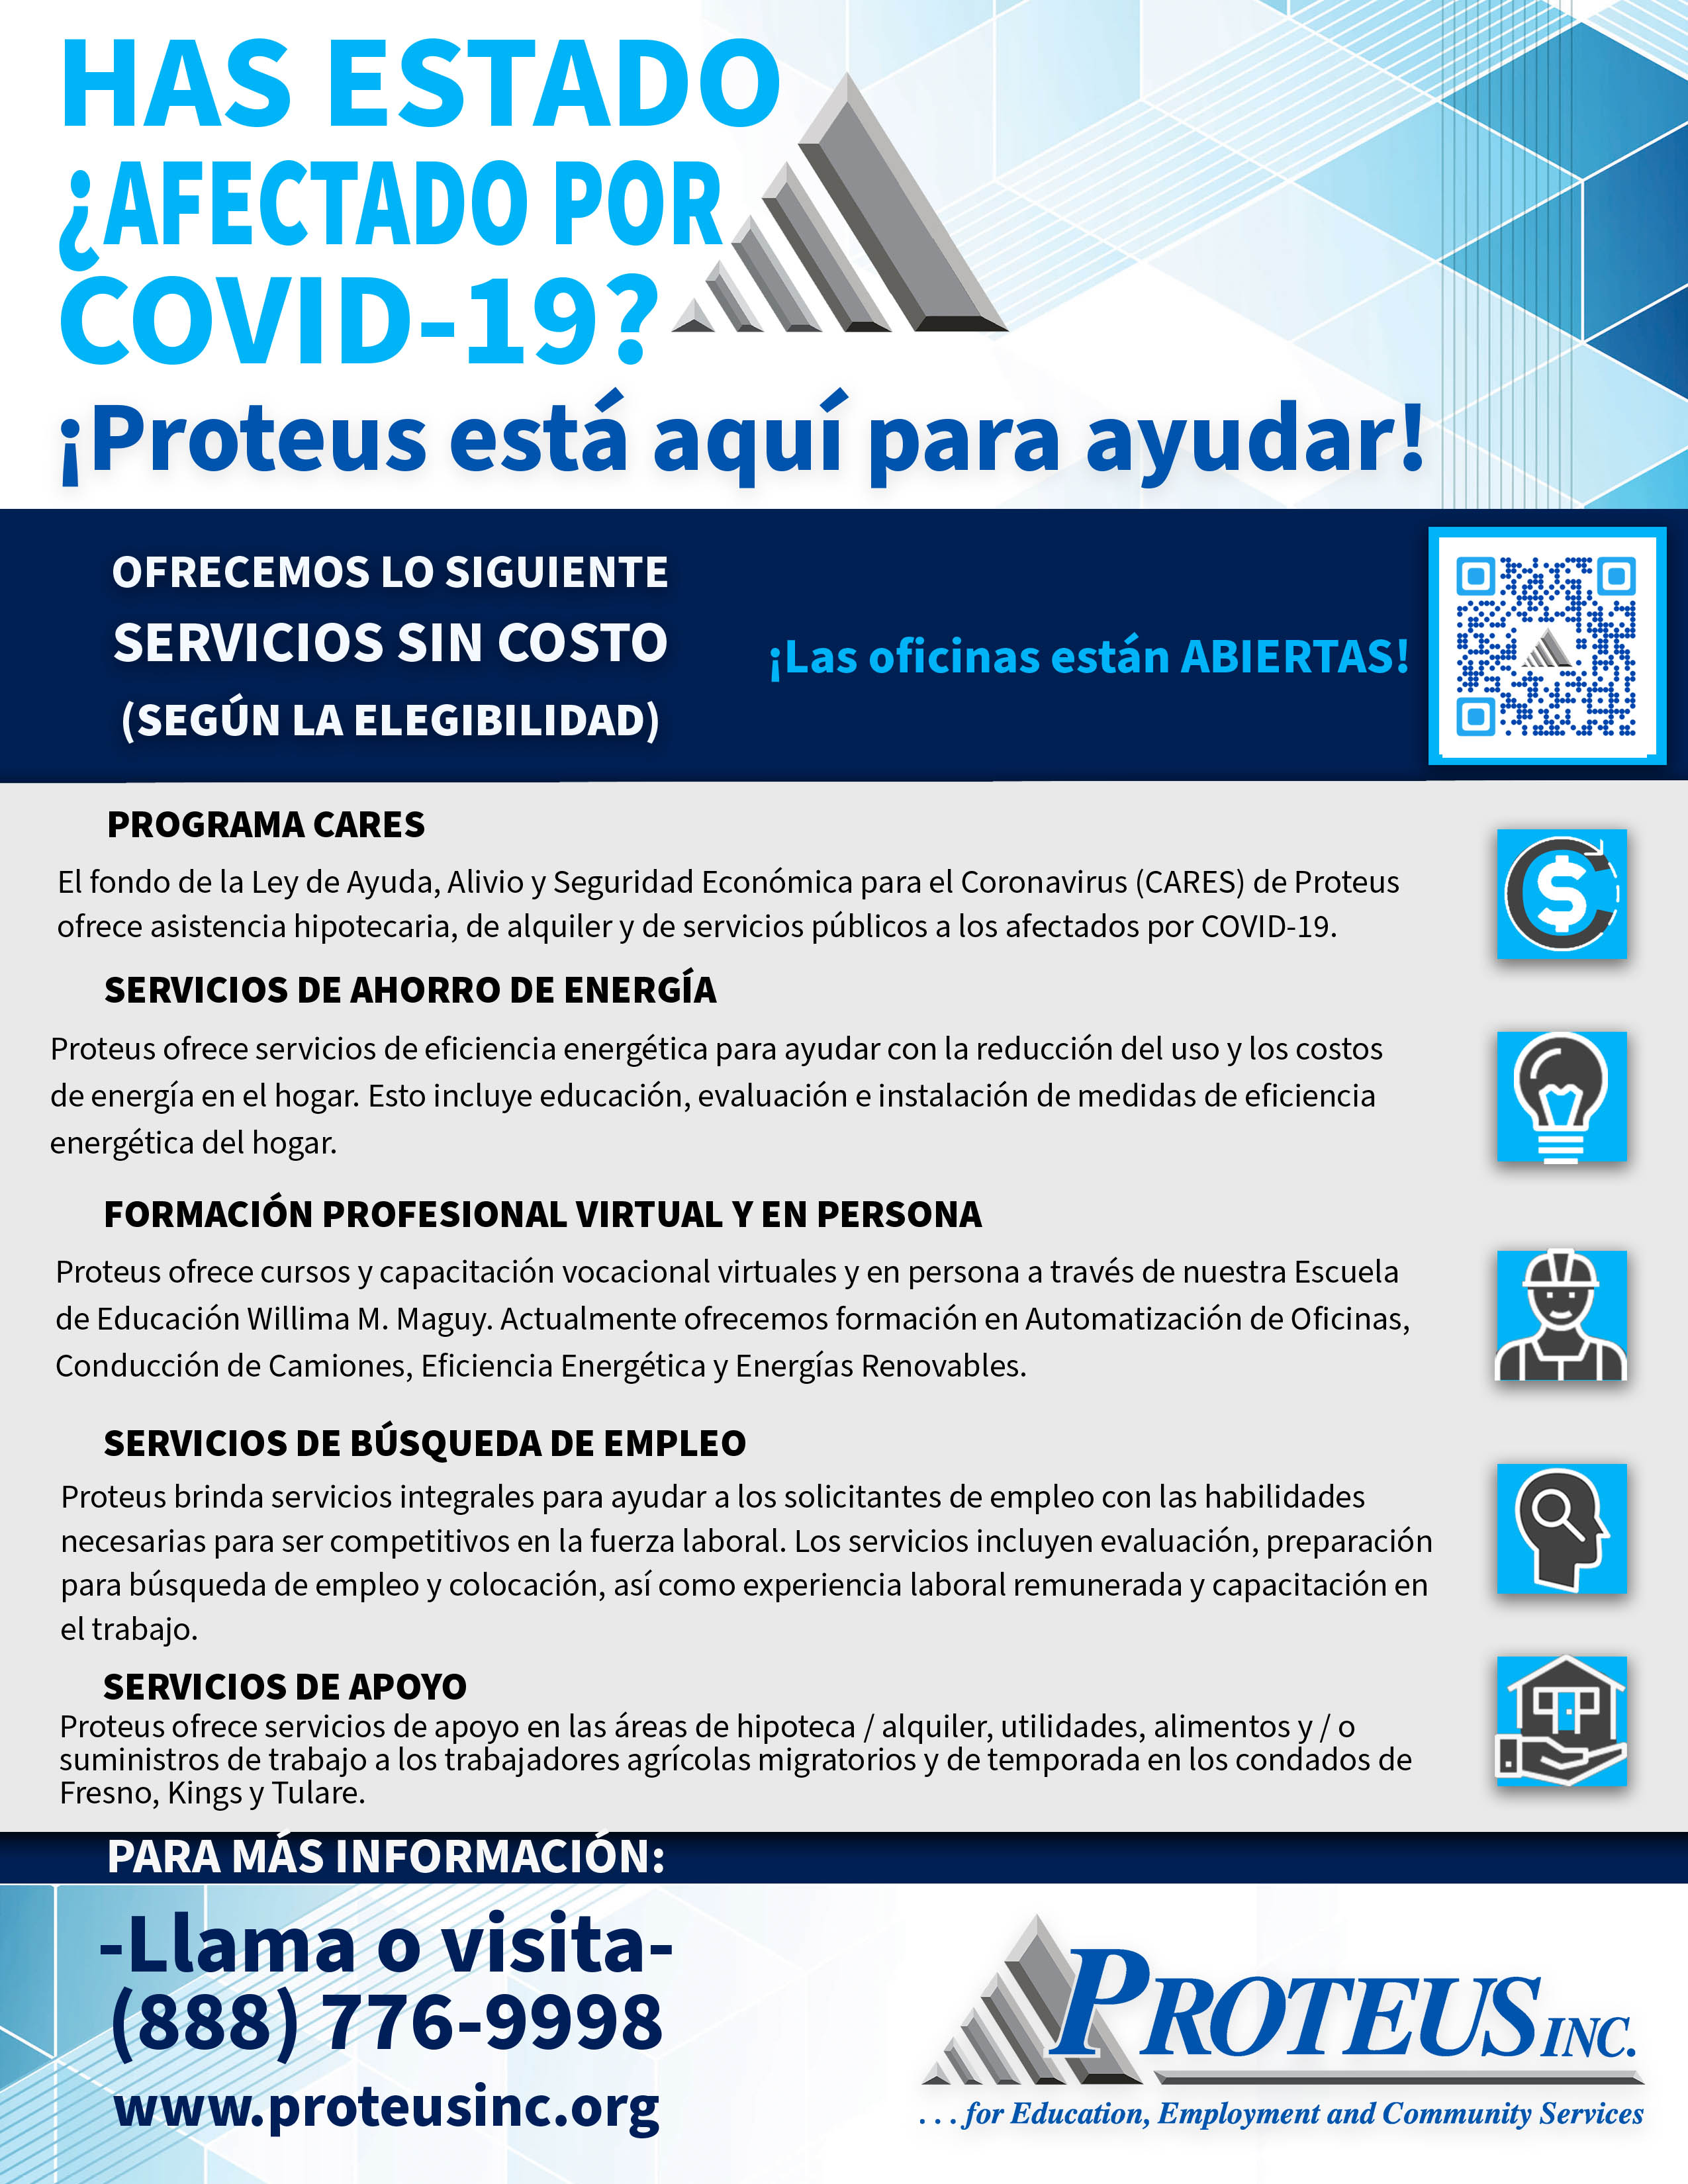 Affected by Covid-19 (Spanish) 2020.jpg